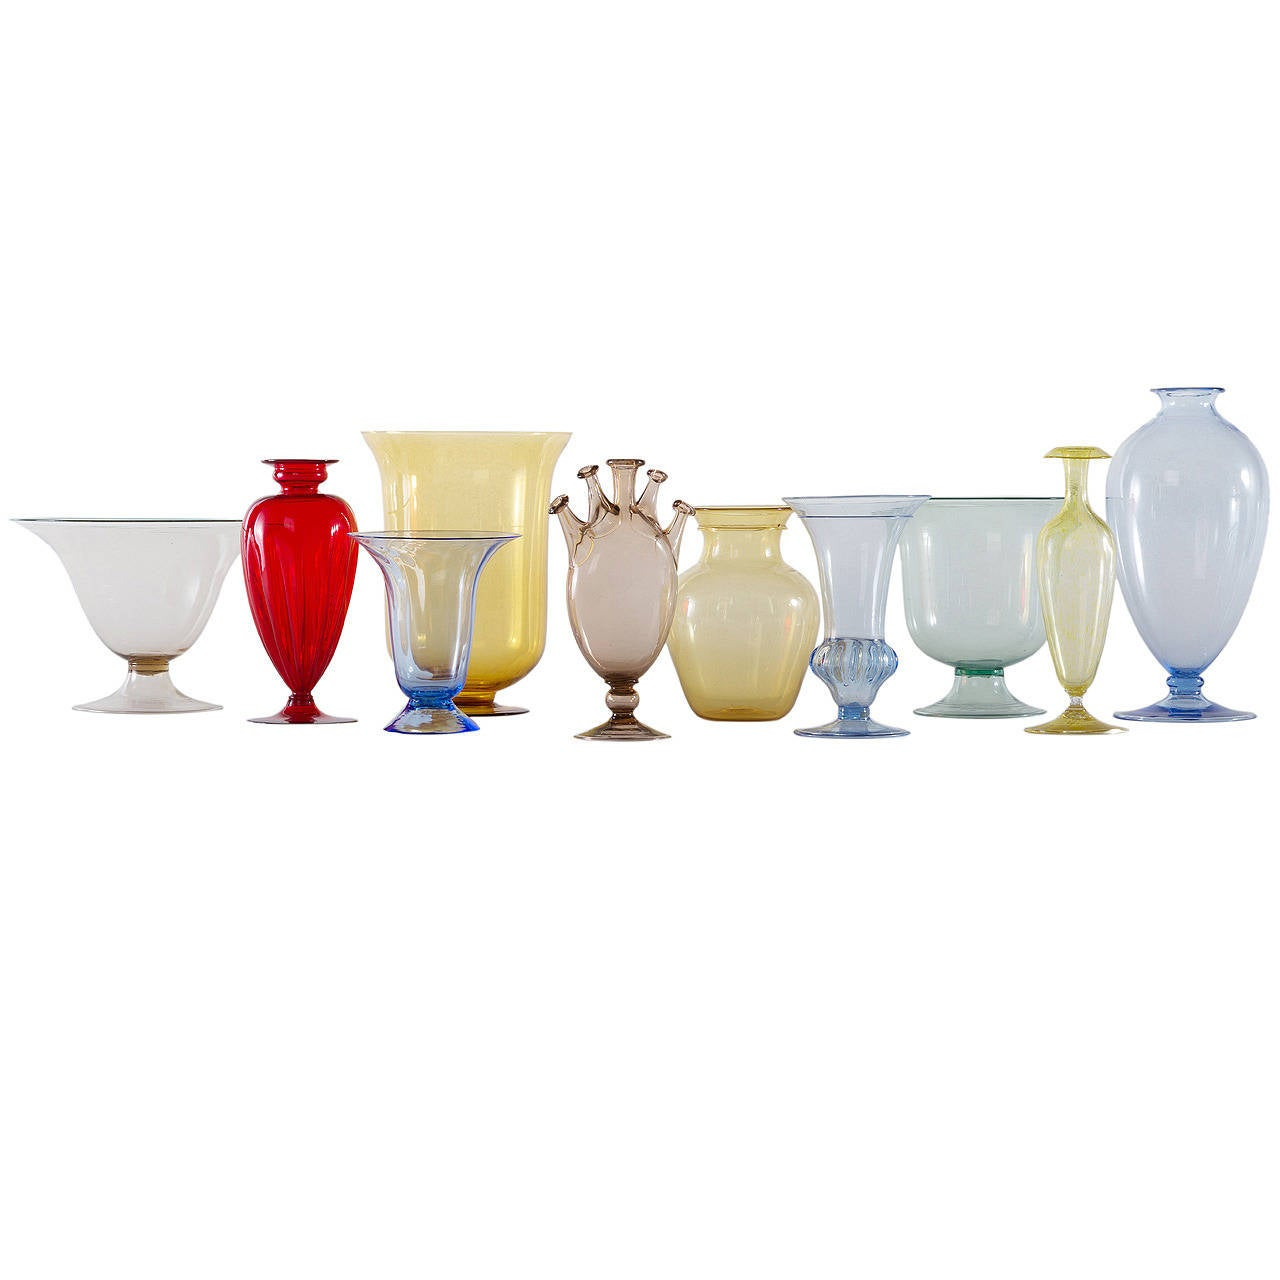 Collection of Ten Early Italian Glass Vases, Venini 1900-1920